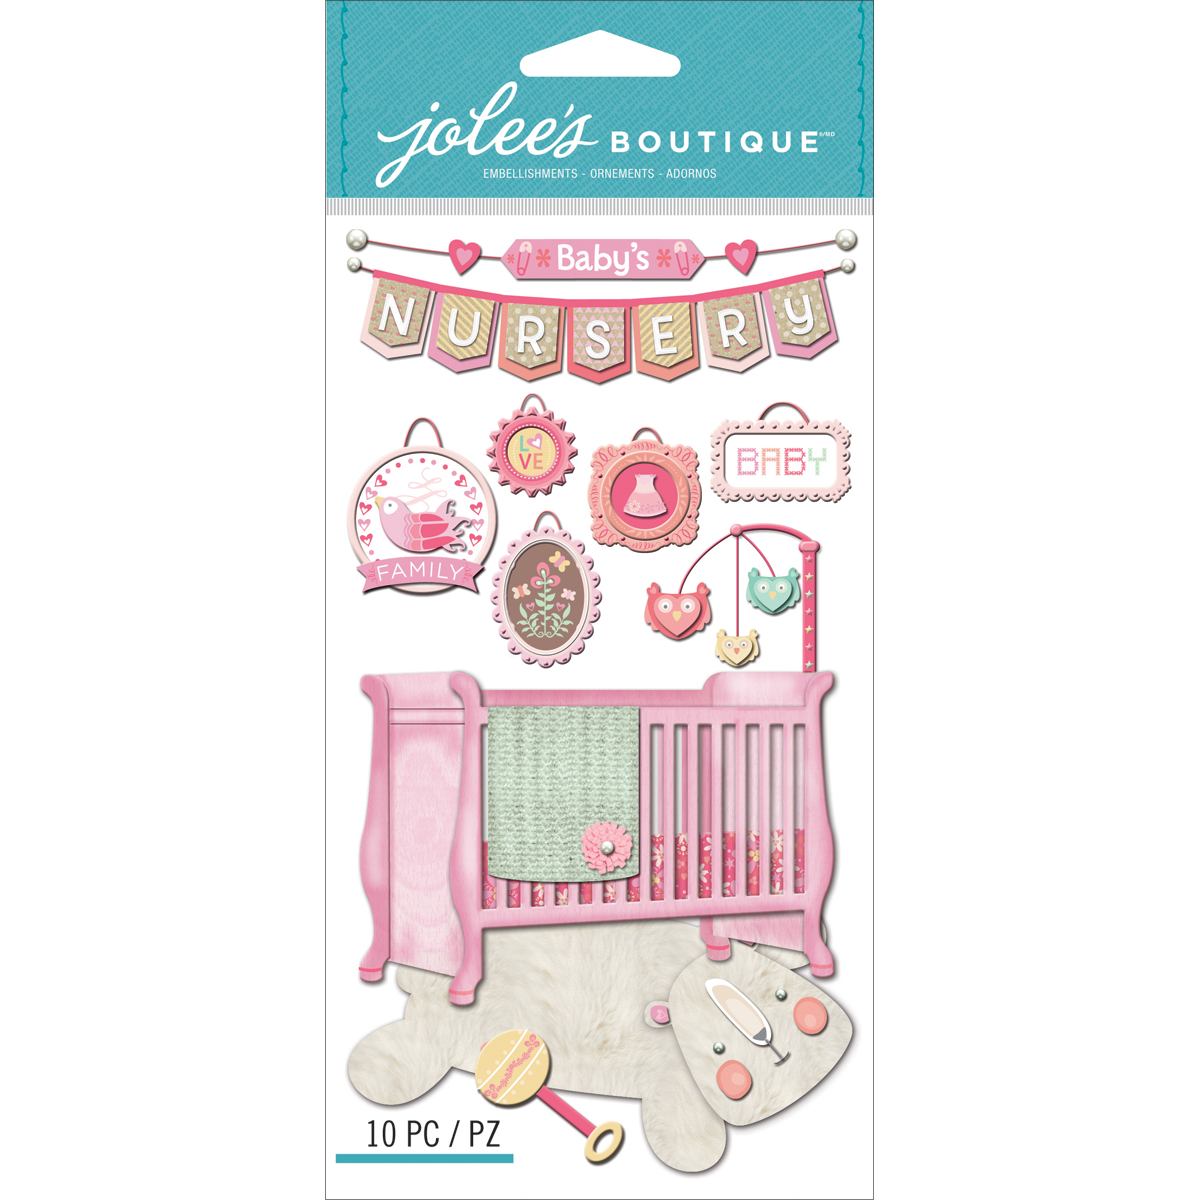 Jolee's Boutique Dimensional Stickers-Baby Girl - Nursery - image 1 of 1